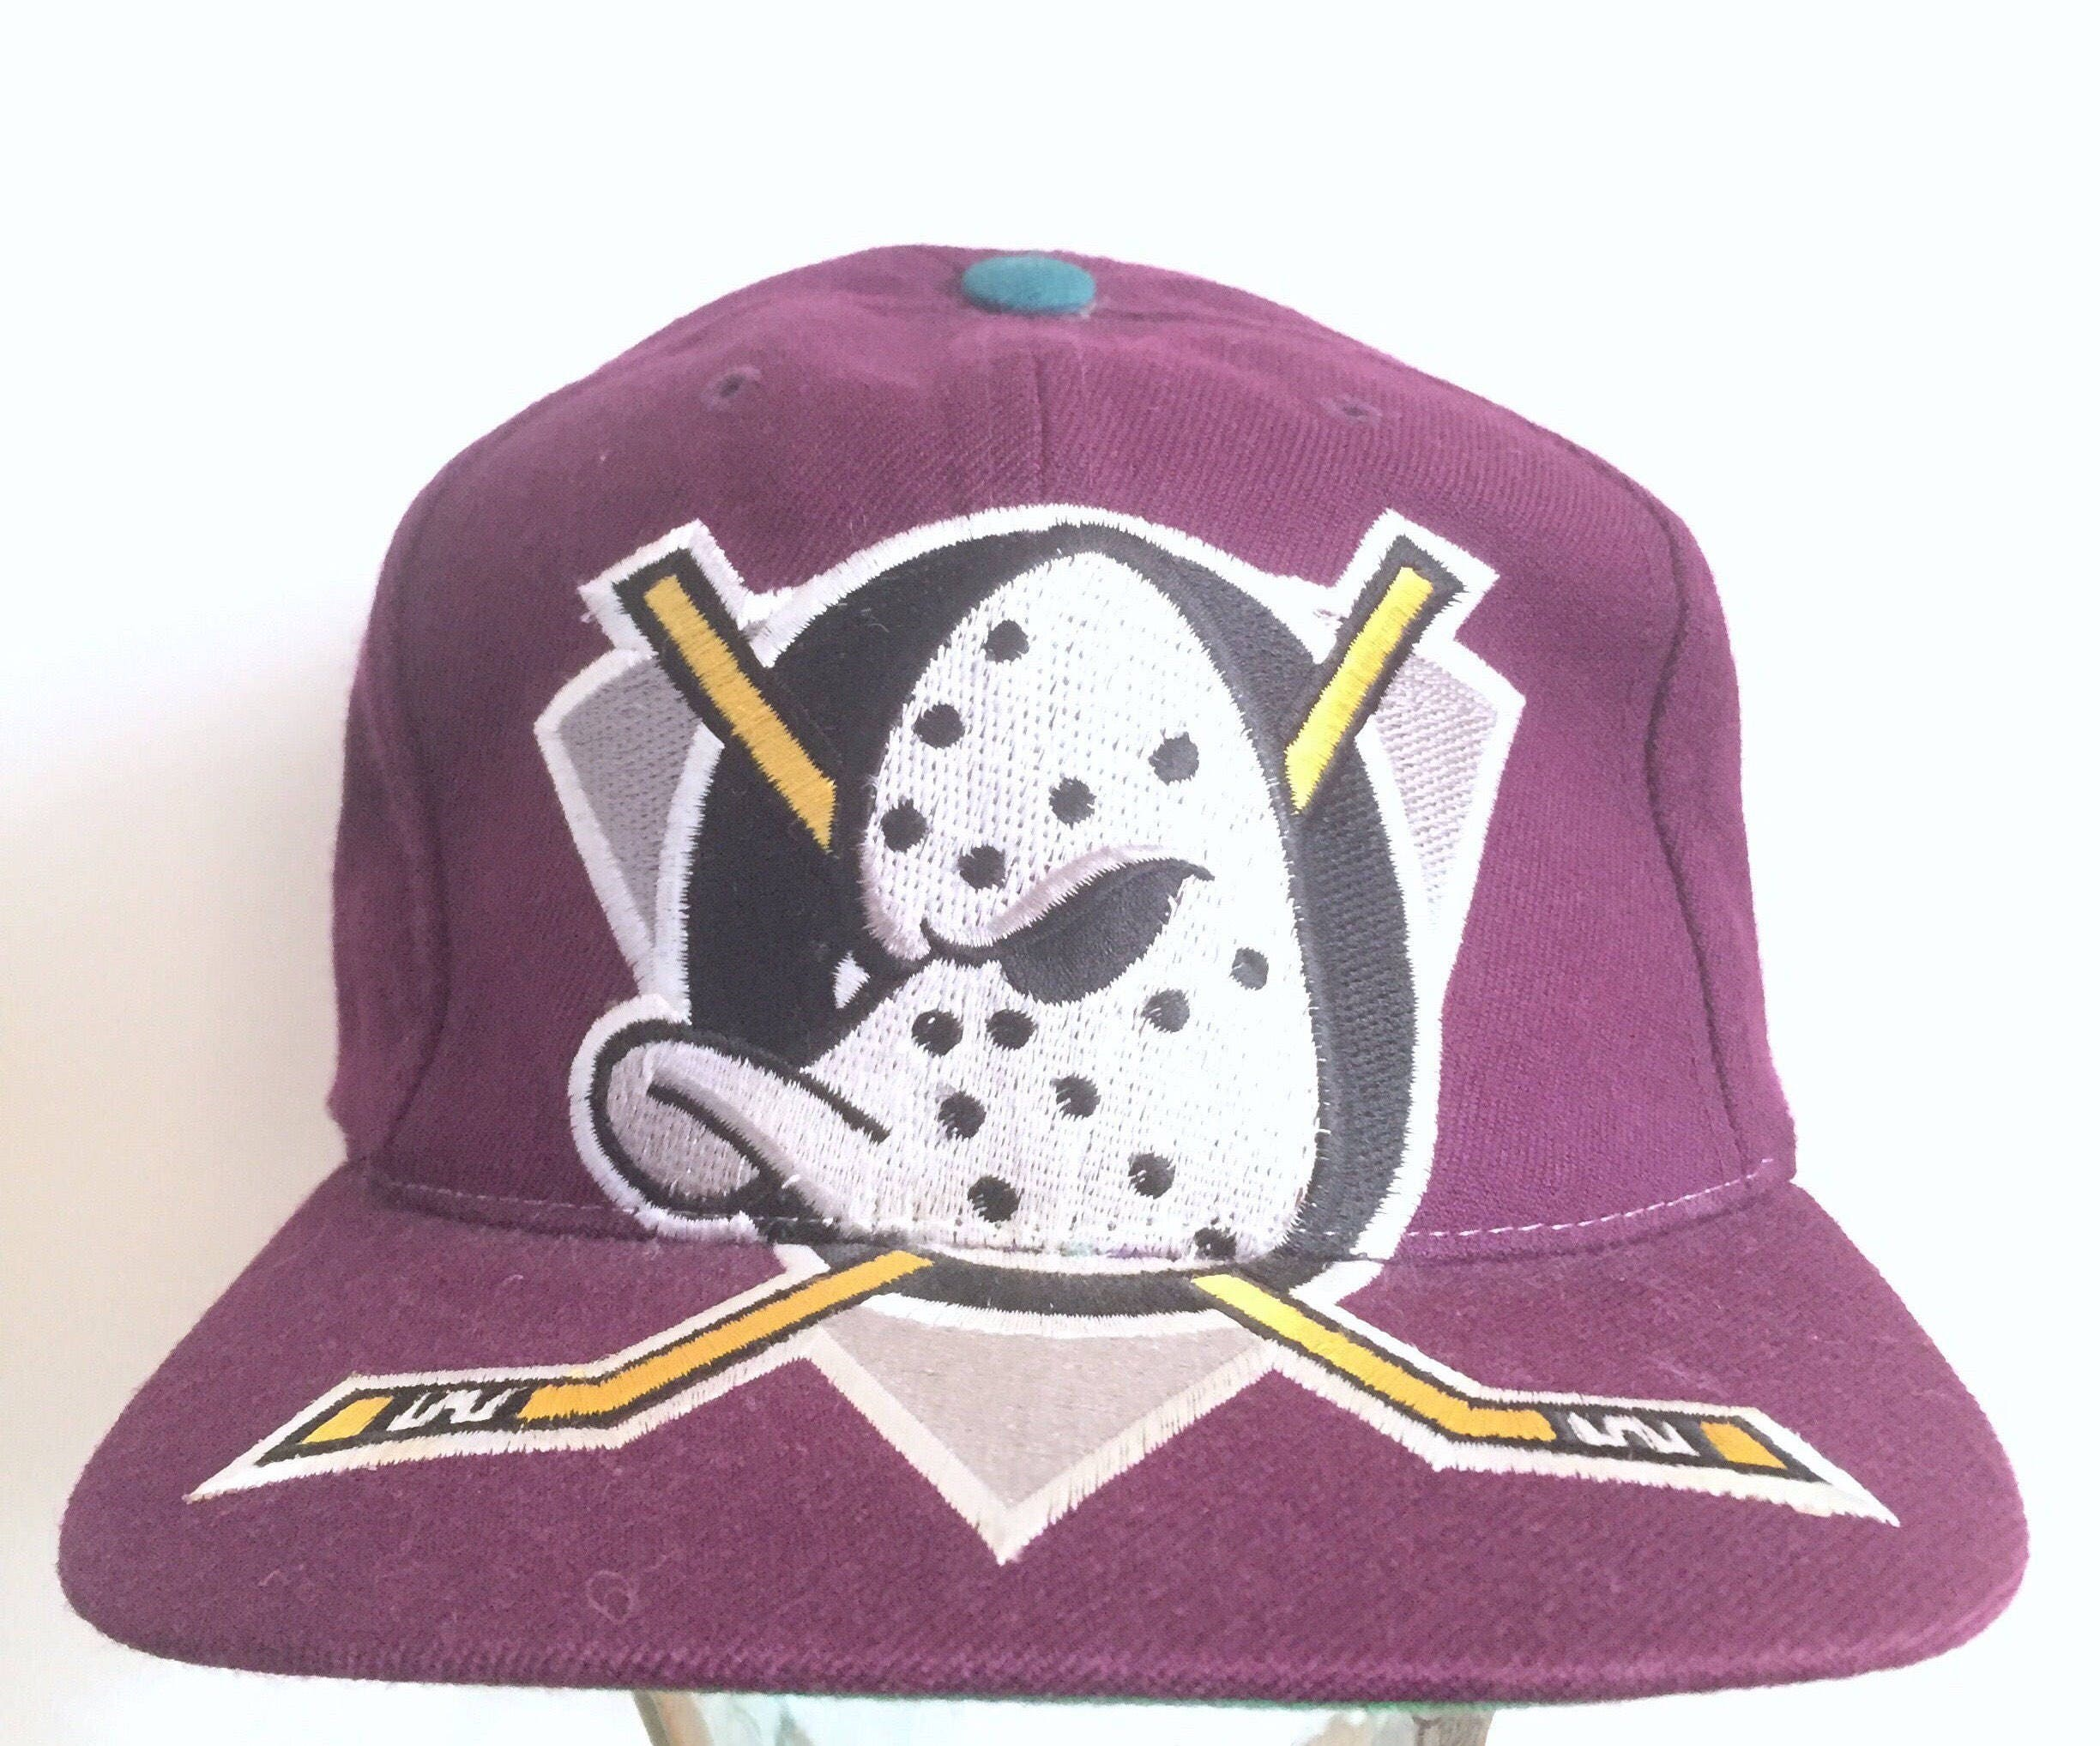 cc0dae7ab60 MIGHTY DUCKS adjustable hat american needle 90s disney starter